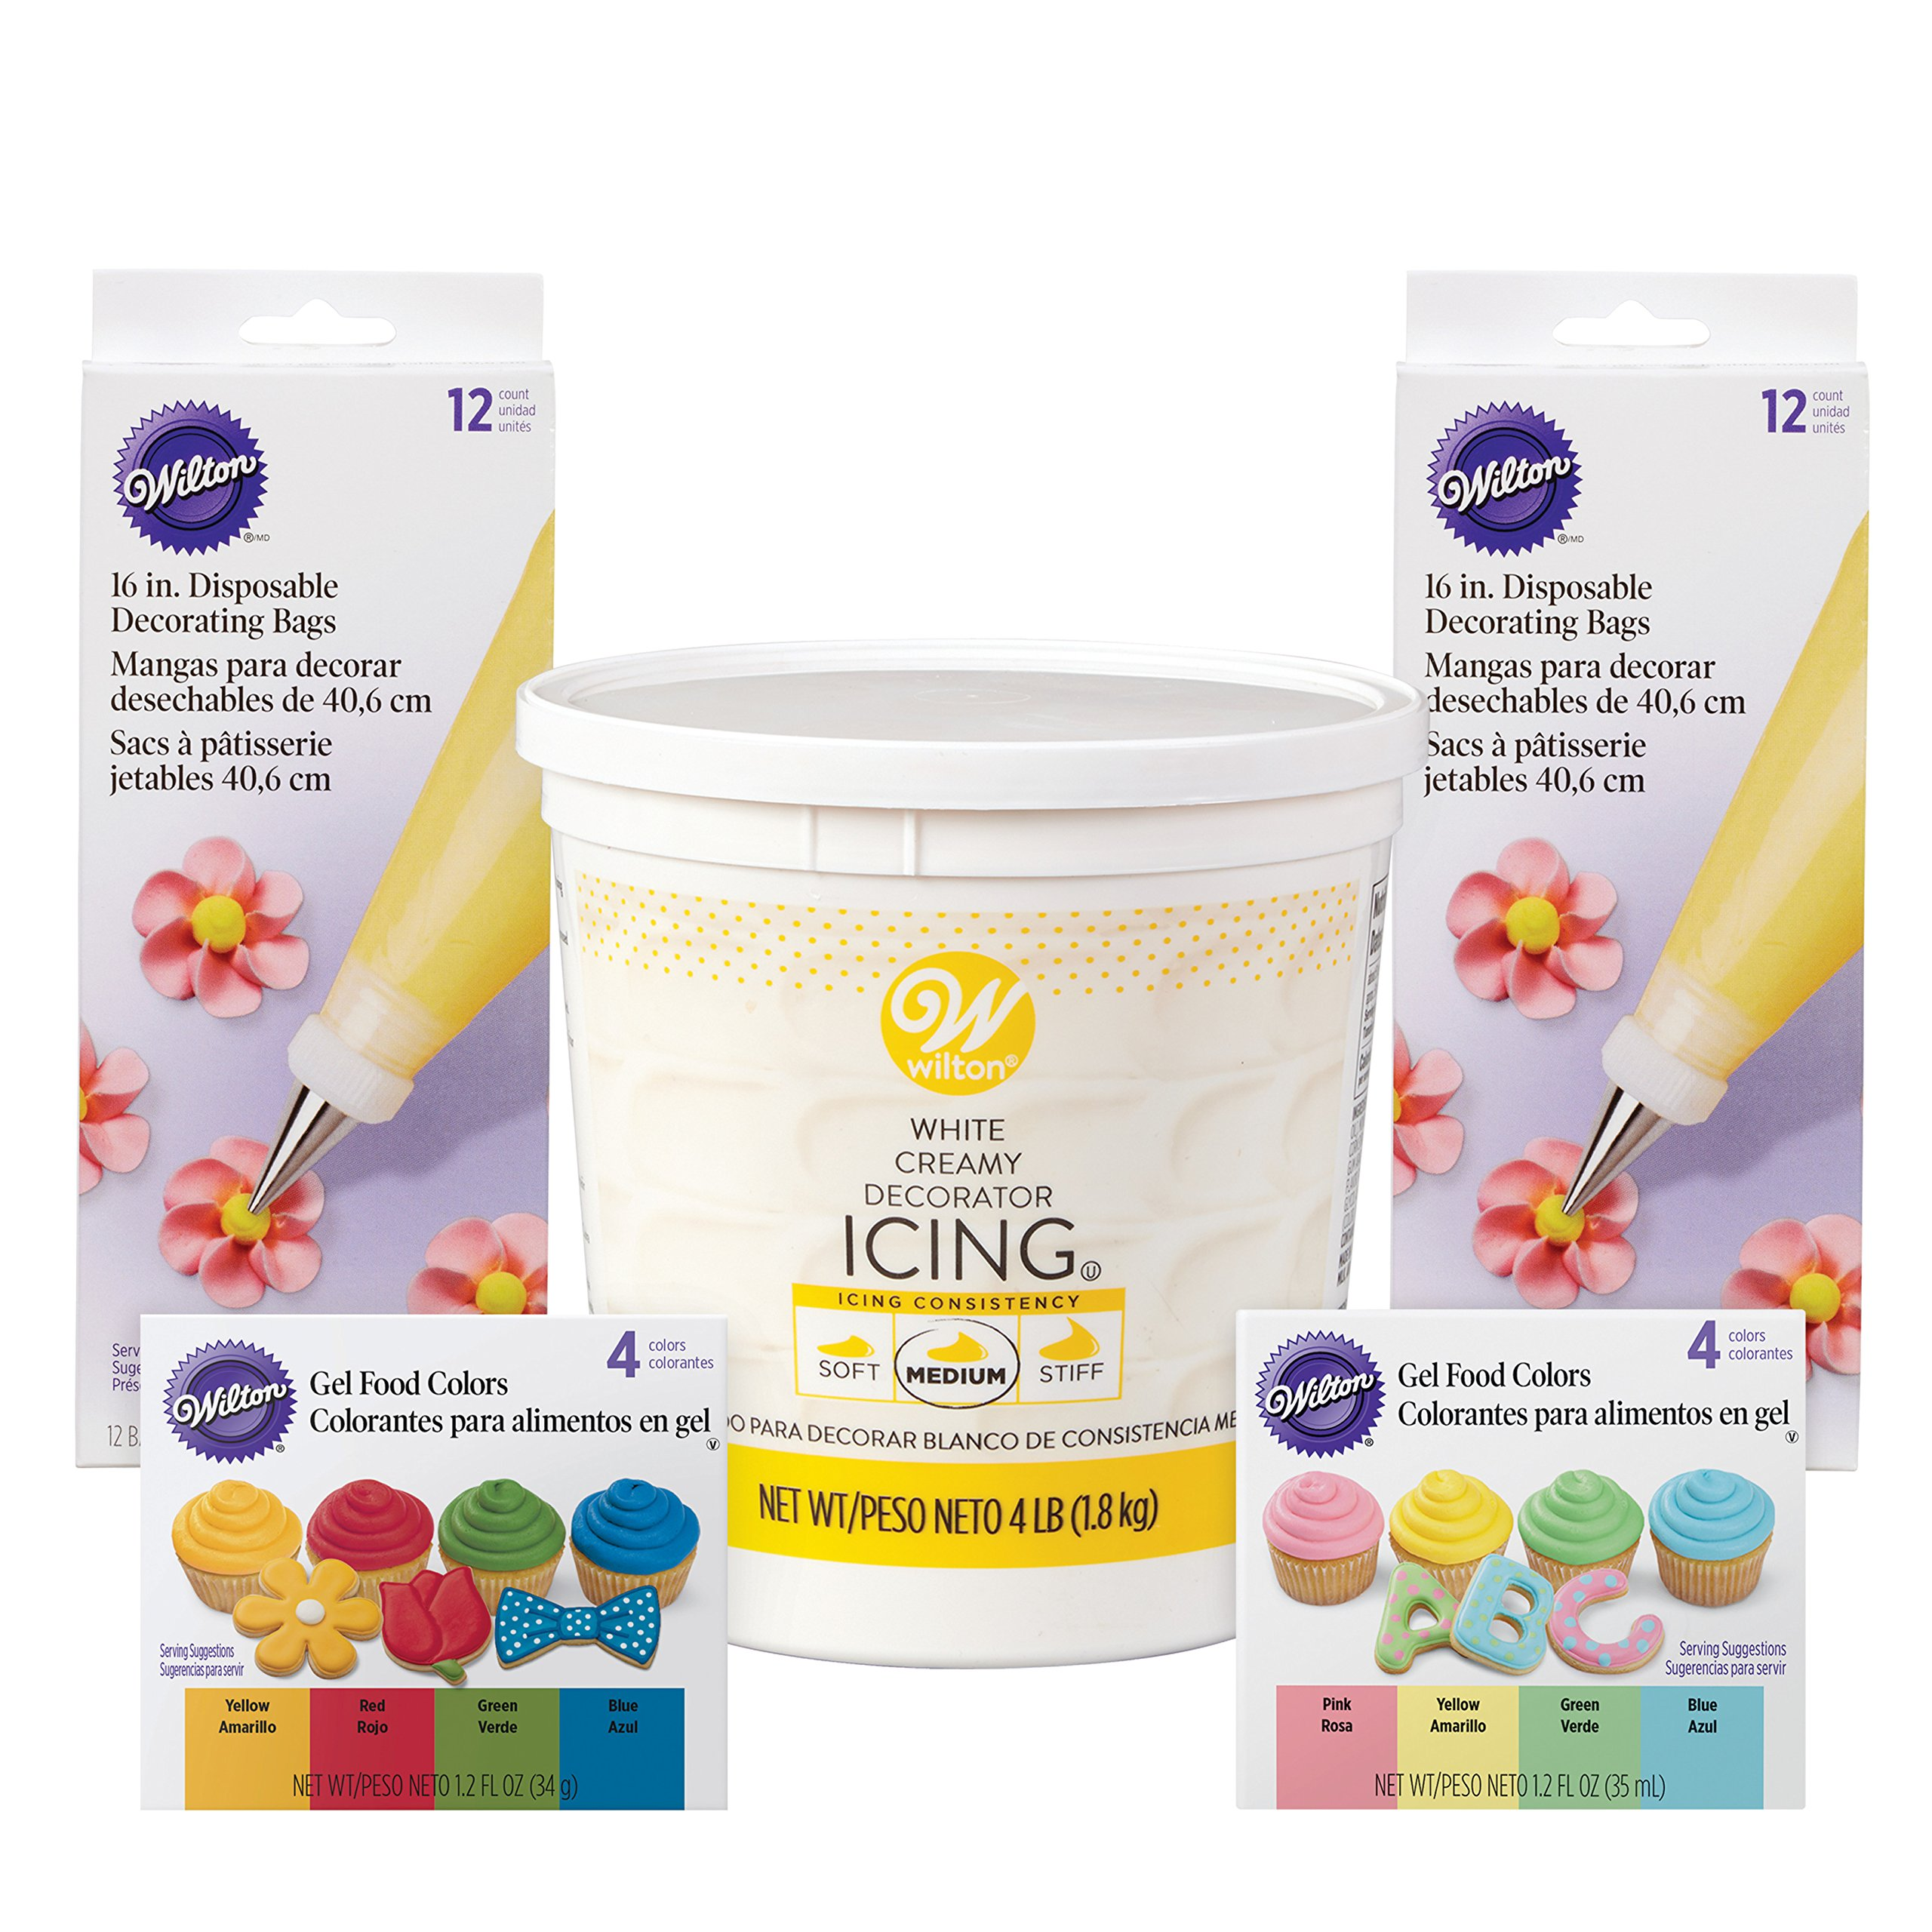 Wilton Colorful Icing Kit for Decorating Cupcakes, Cookies, and Cakes - Decorator Icing, Piping Bags, and Gel Food Colors by Wilton